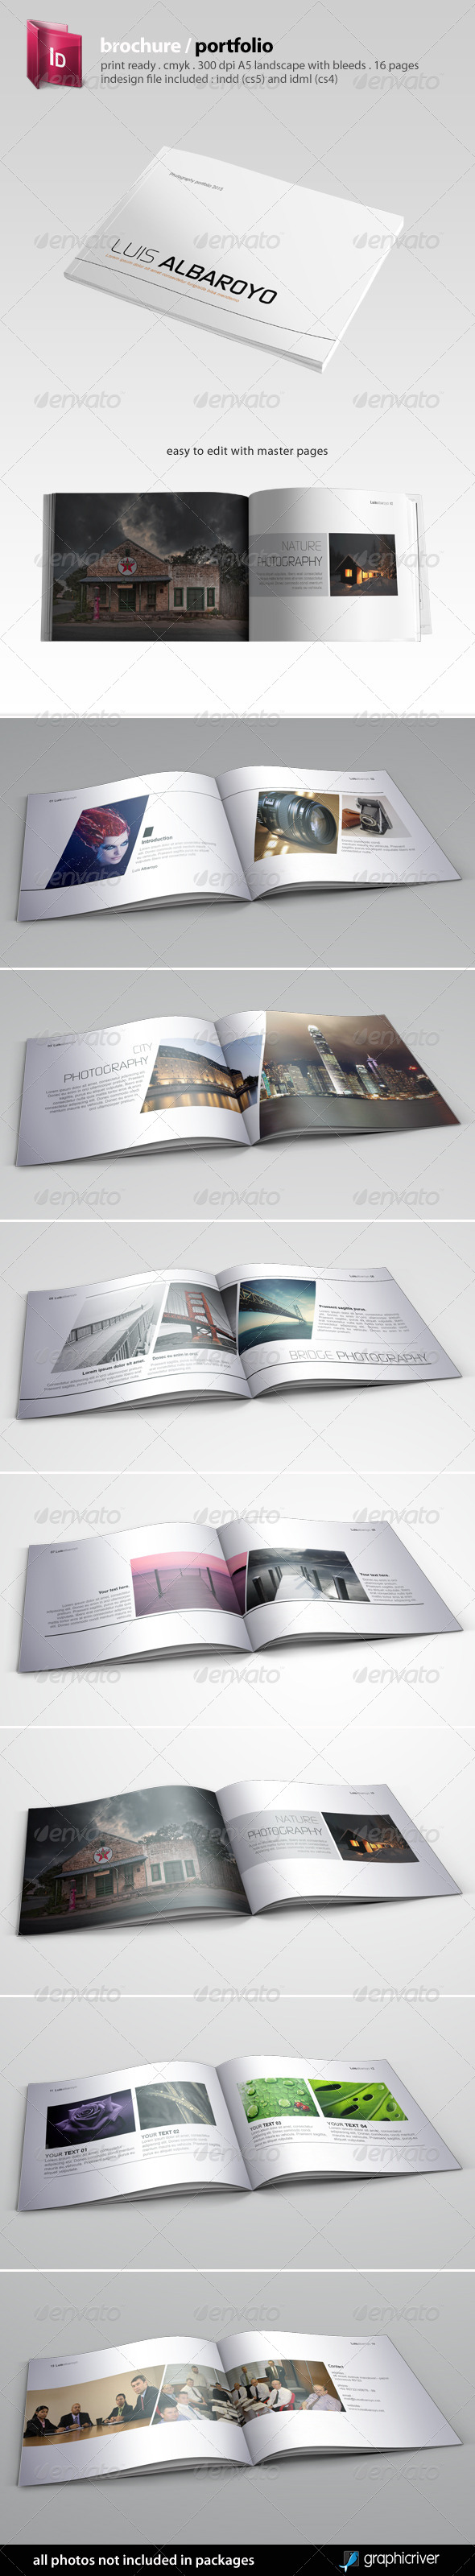 Indesign Brochure / Portfolio Template by semutireng | GraphicRiver